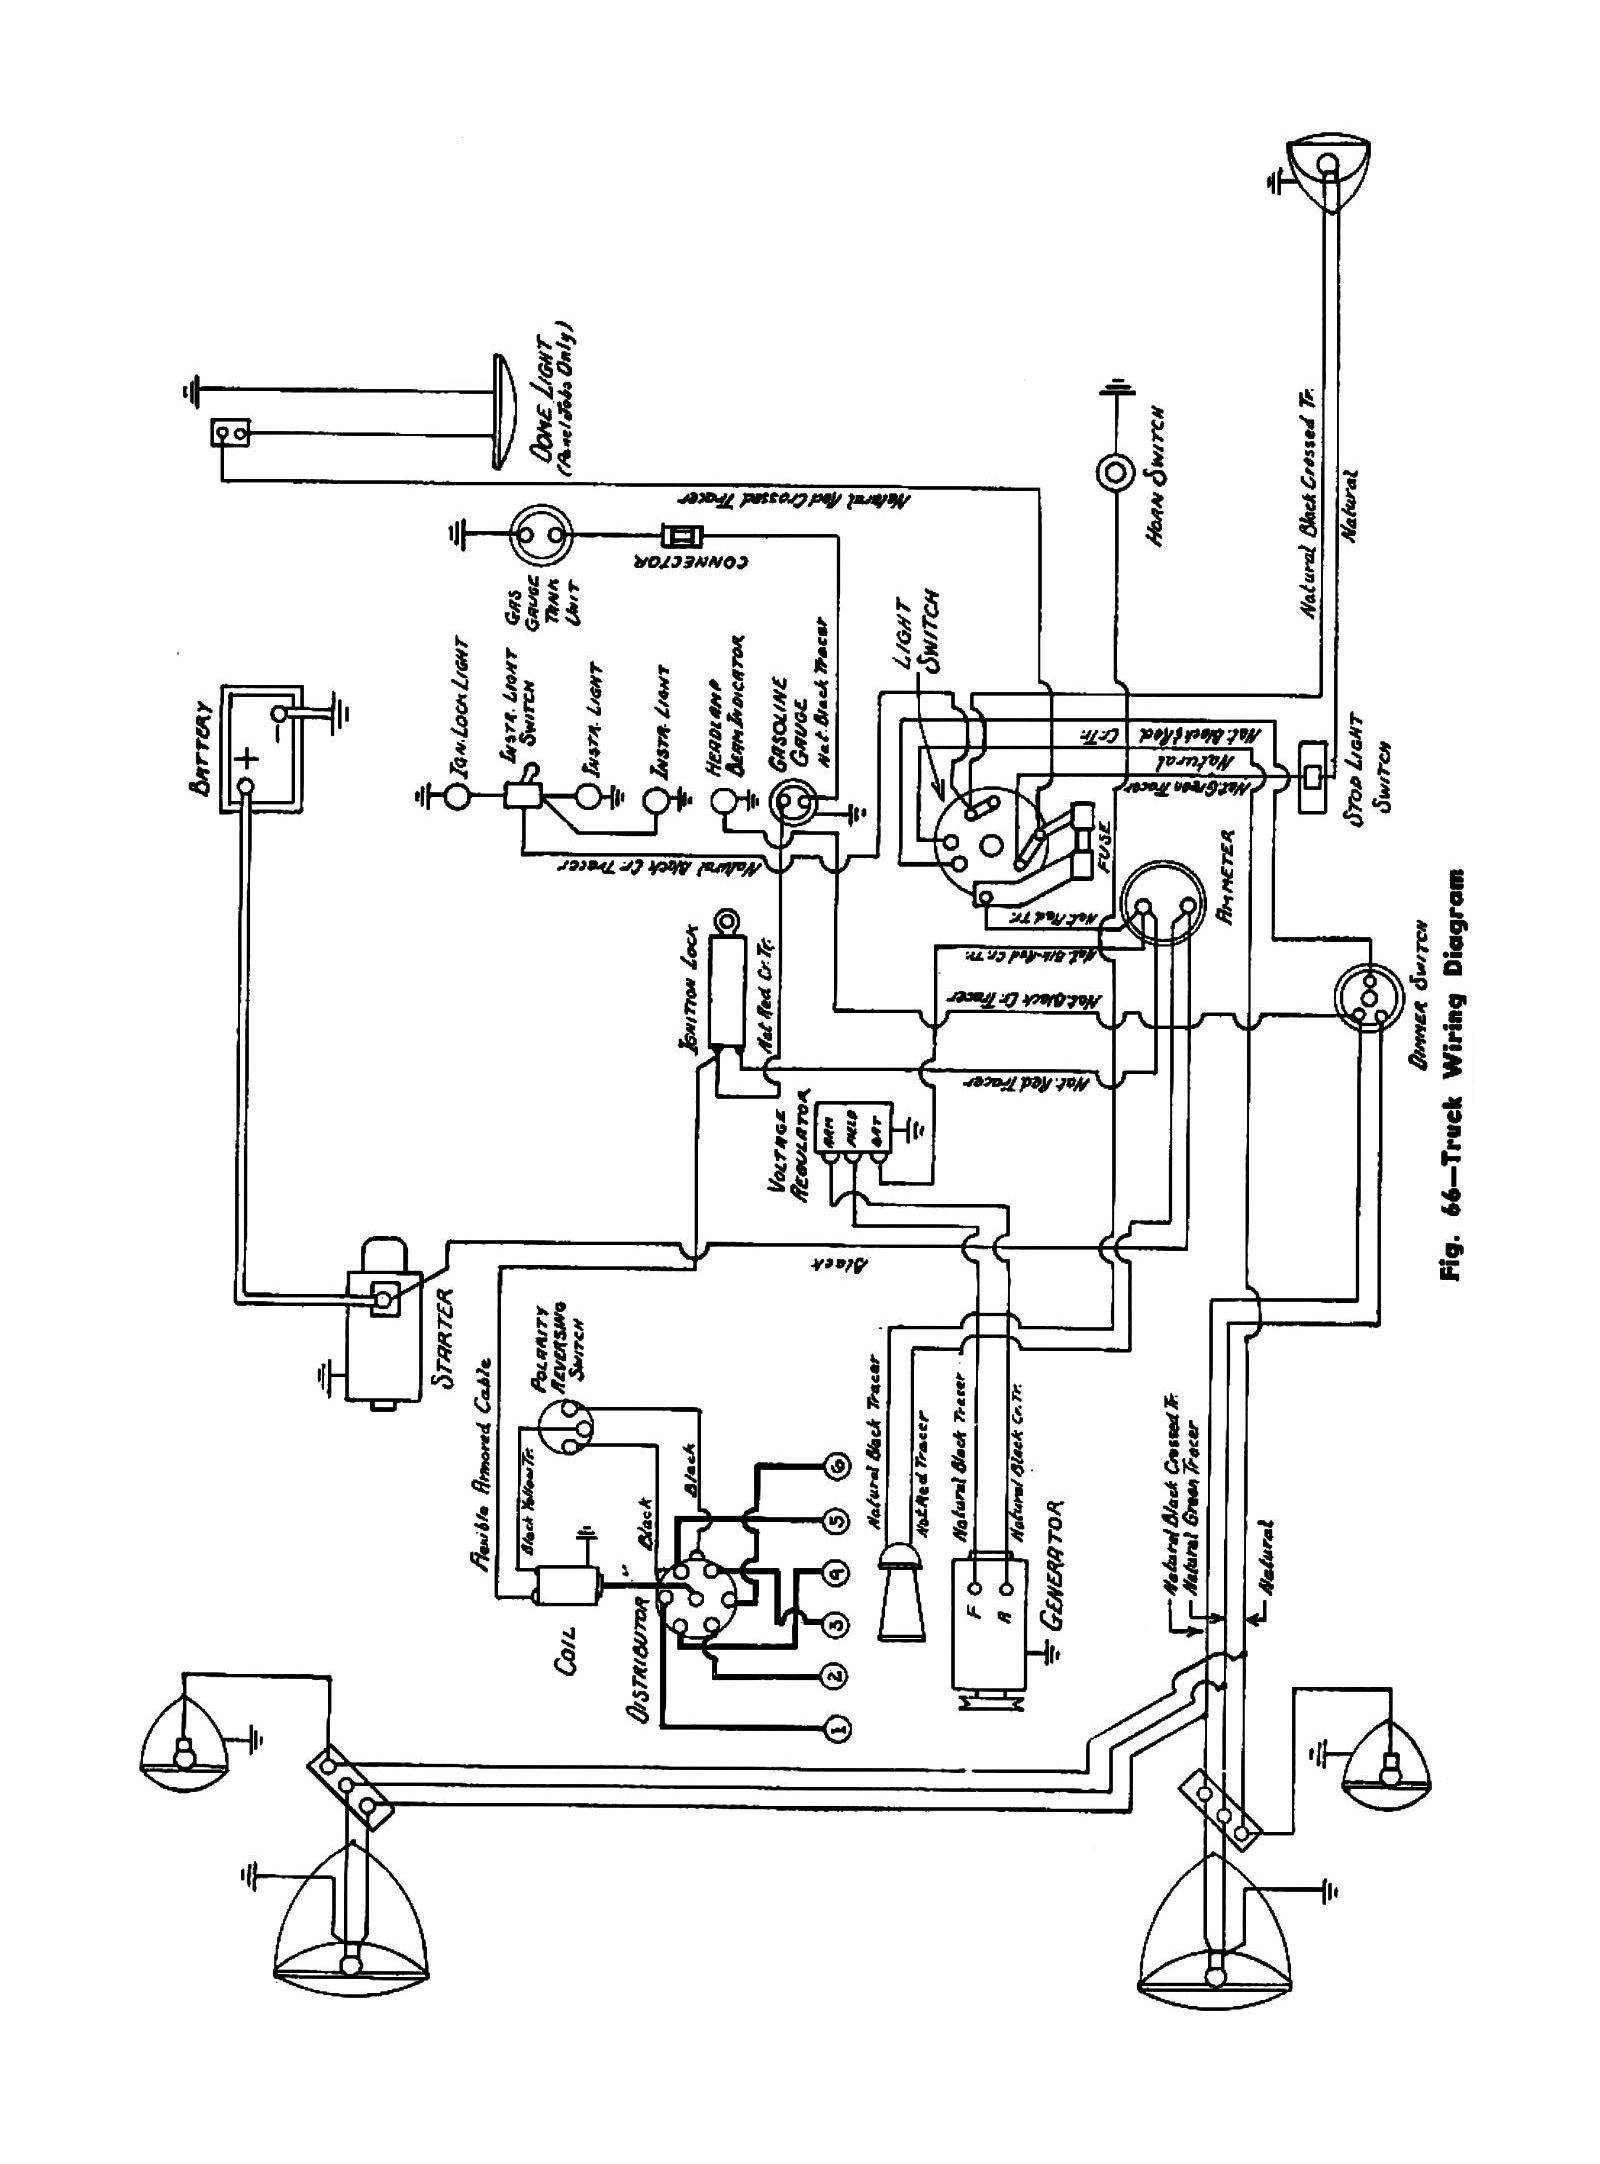 Silverado Ignition Diagram Archive Of Automotive Wiring 2002 Box Fuse Tahoe Ingnition Chevy Diagrams Rh Oldcarmanualproject Com 2001